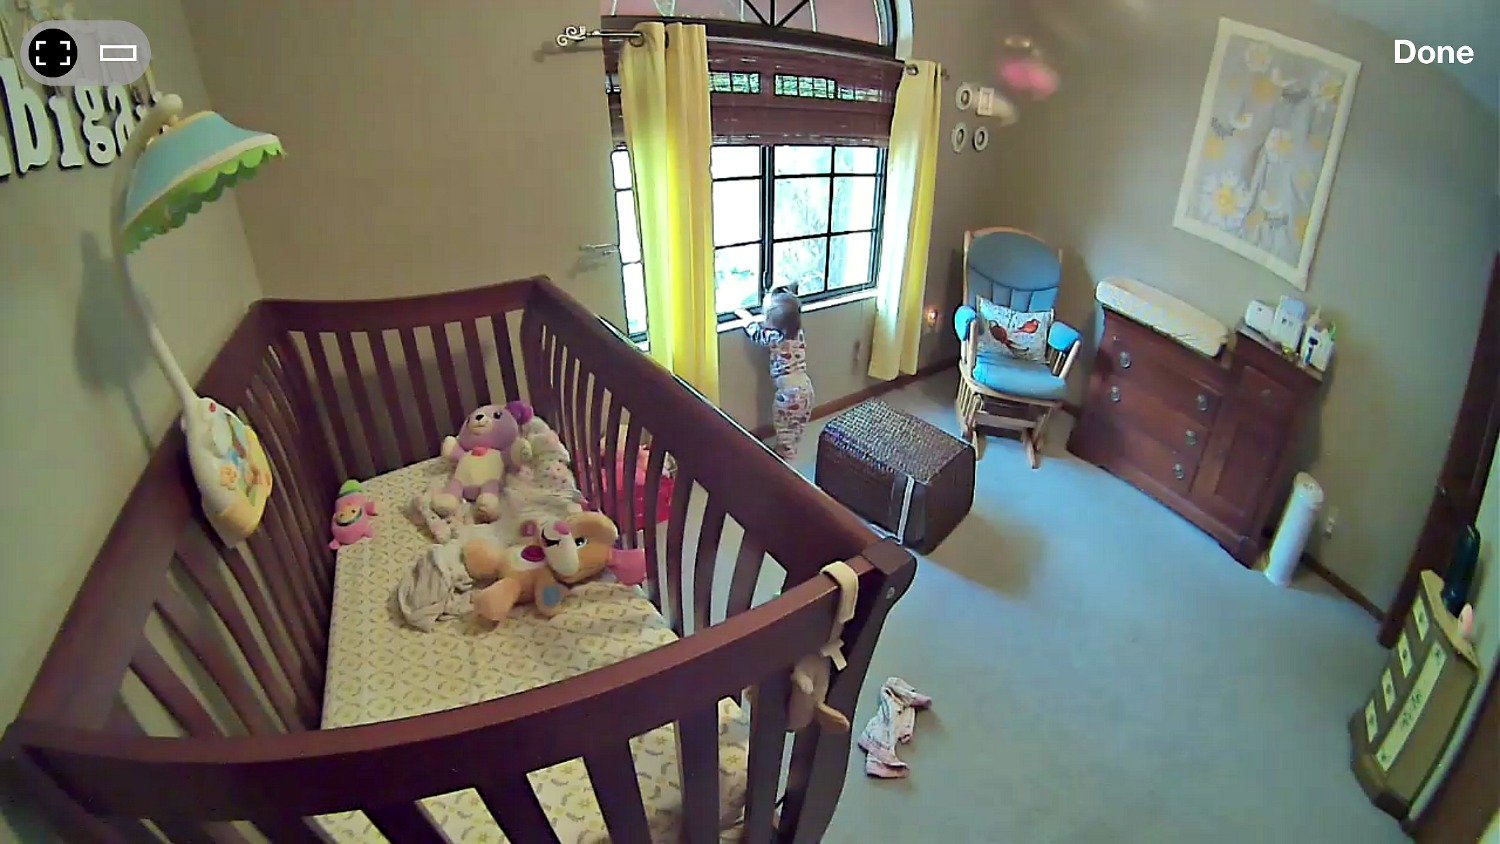 The NEW Kodak Baby Monitoring System has an AMAZING picture!